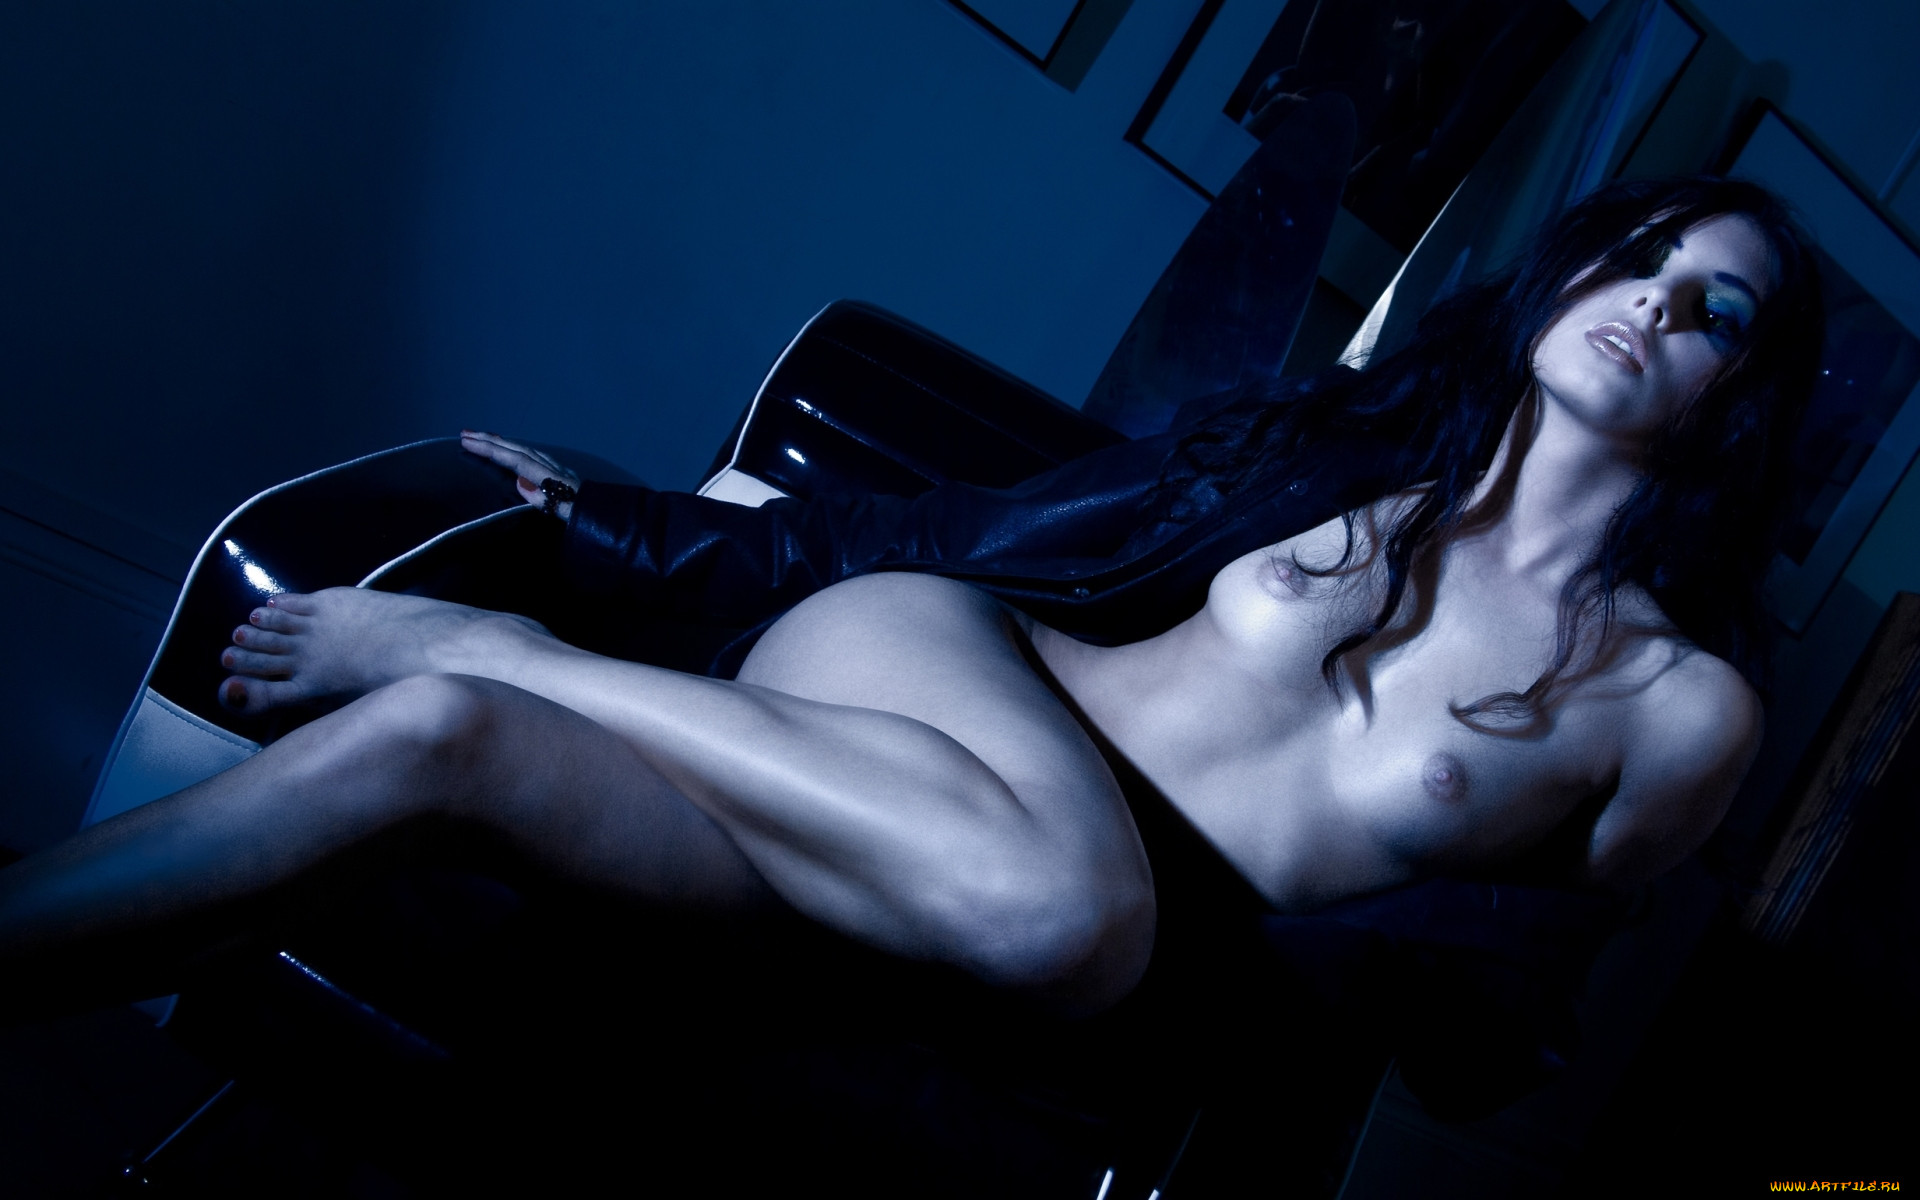 Erotic blue wallpapers download adult clip